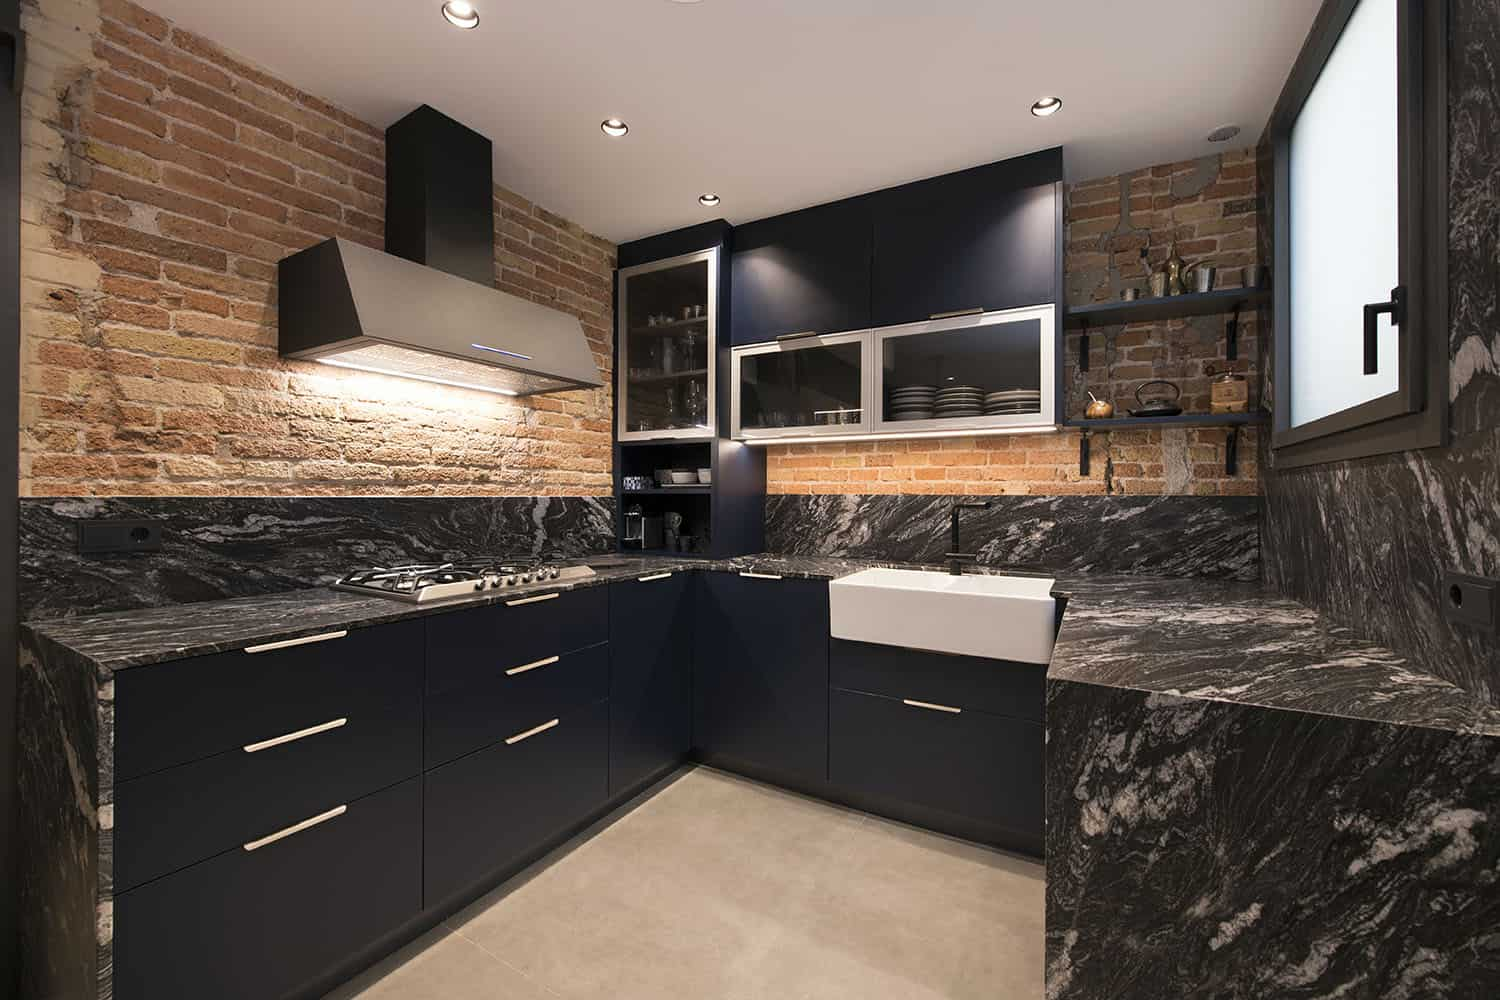 The kitchen is all industrial, with black cabinetry, black marble countertops and backsplashes, red brick walls